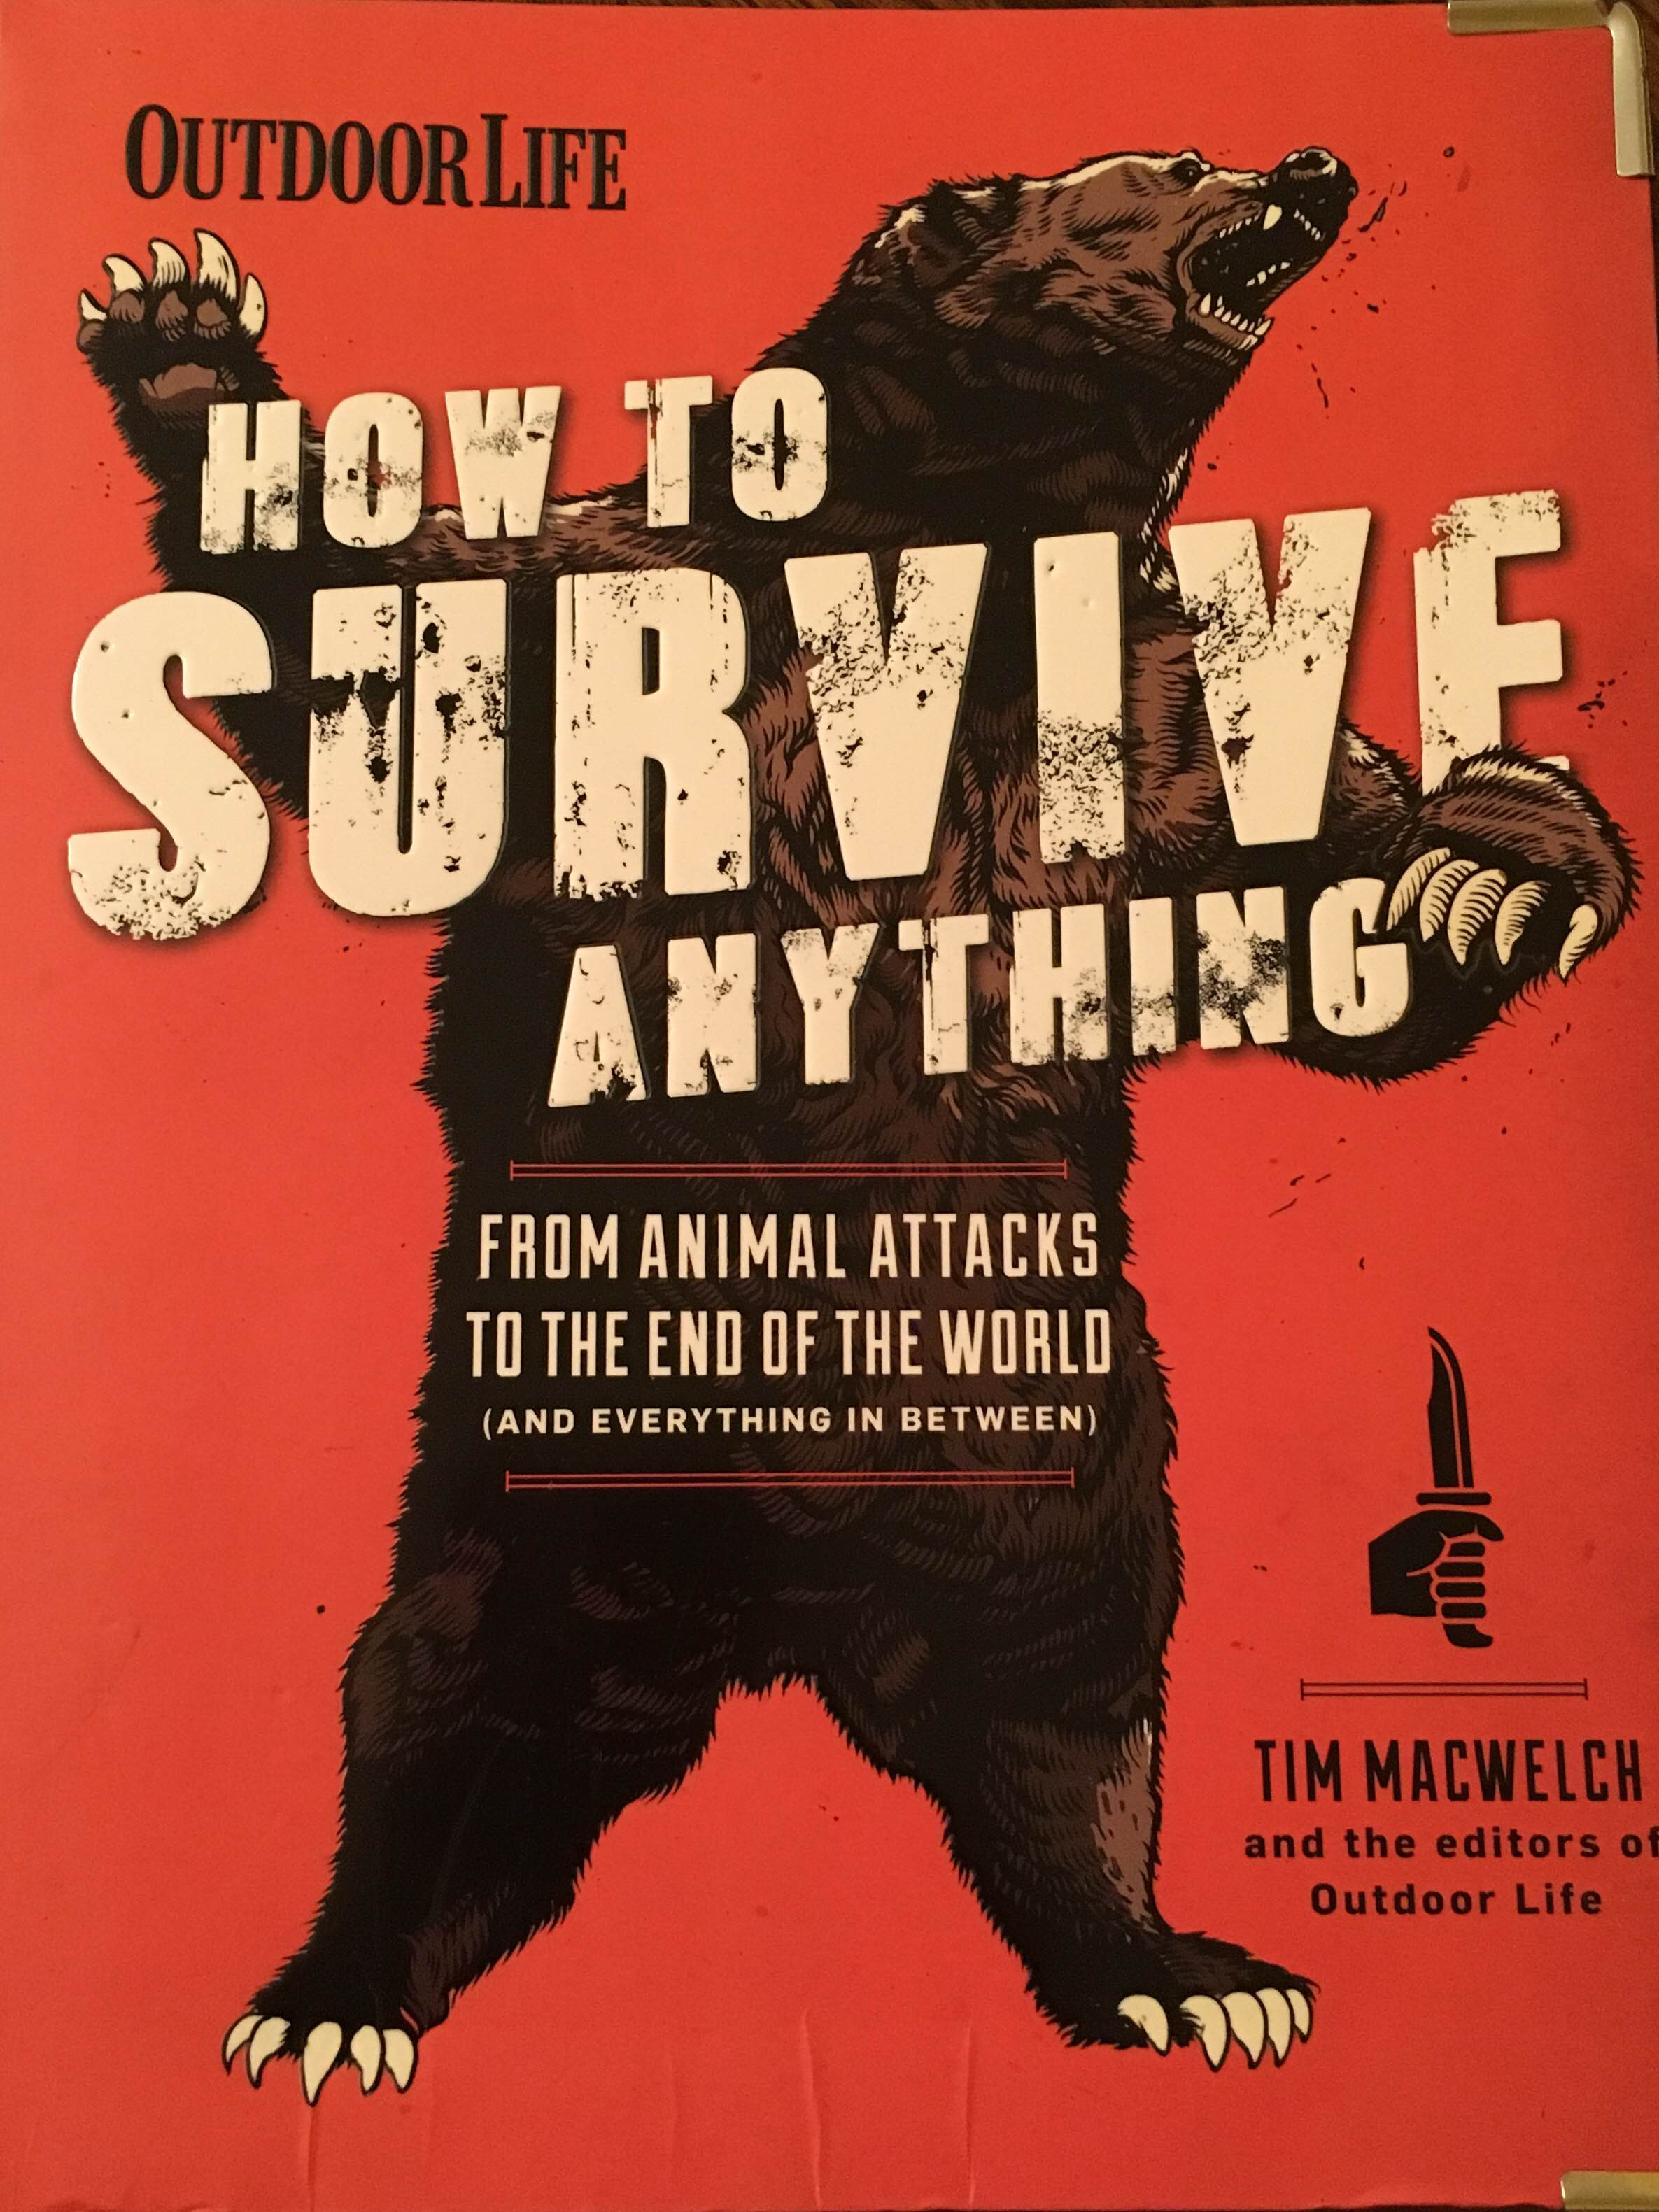 How To Survive Anything by Tim MacWelch and Outdoor Life [Book Review]